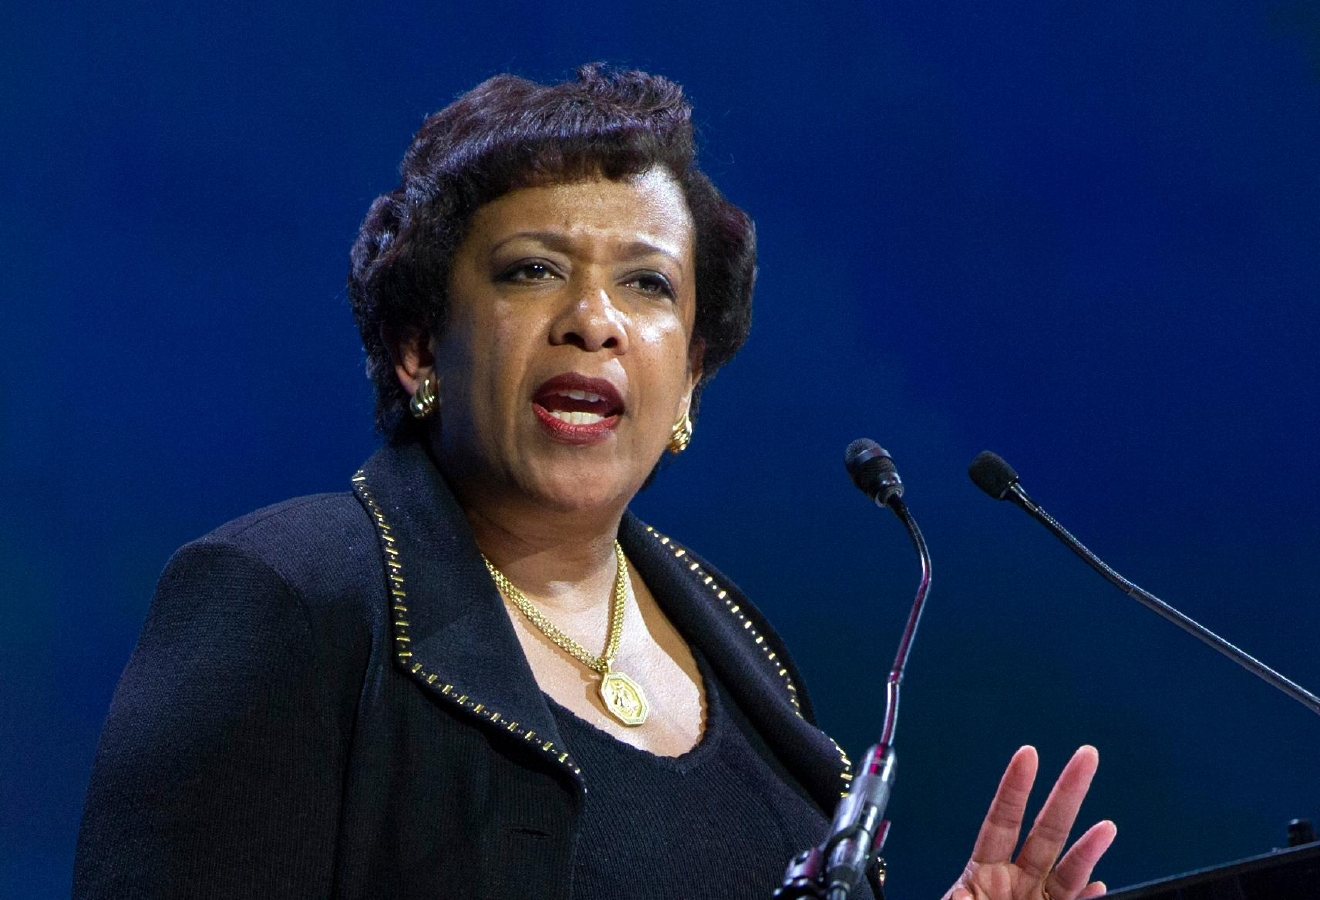 FILE - In this June 14, 2016 file photo, Attorney General Loretta Lynch speaks in Washington. Former President Bill Clinton spoke with Lynch during an impromptu meeting in Phoenix, but Lynch says the discussion did not involve the investigation into Hillary Clinton's email use as secretary of state. (AP Photo/Cliff Owen, File)